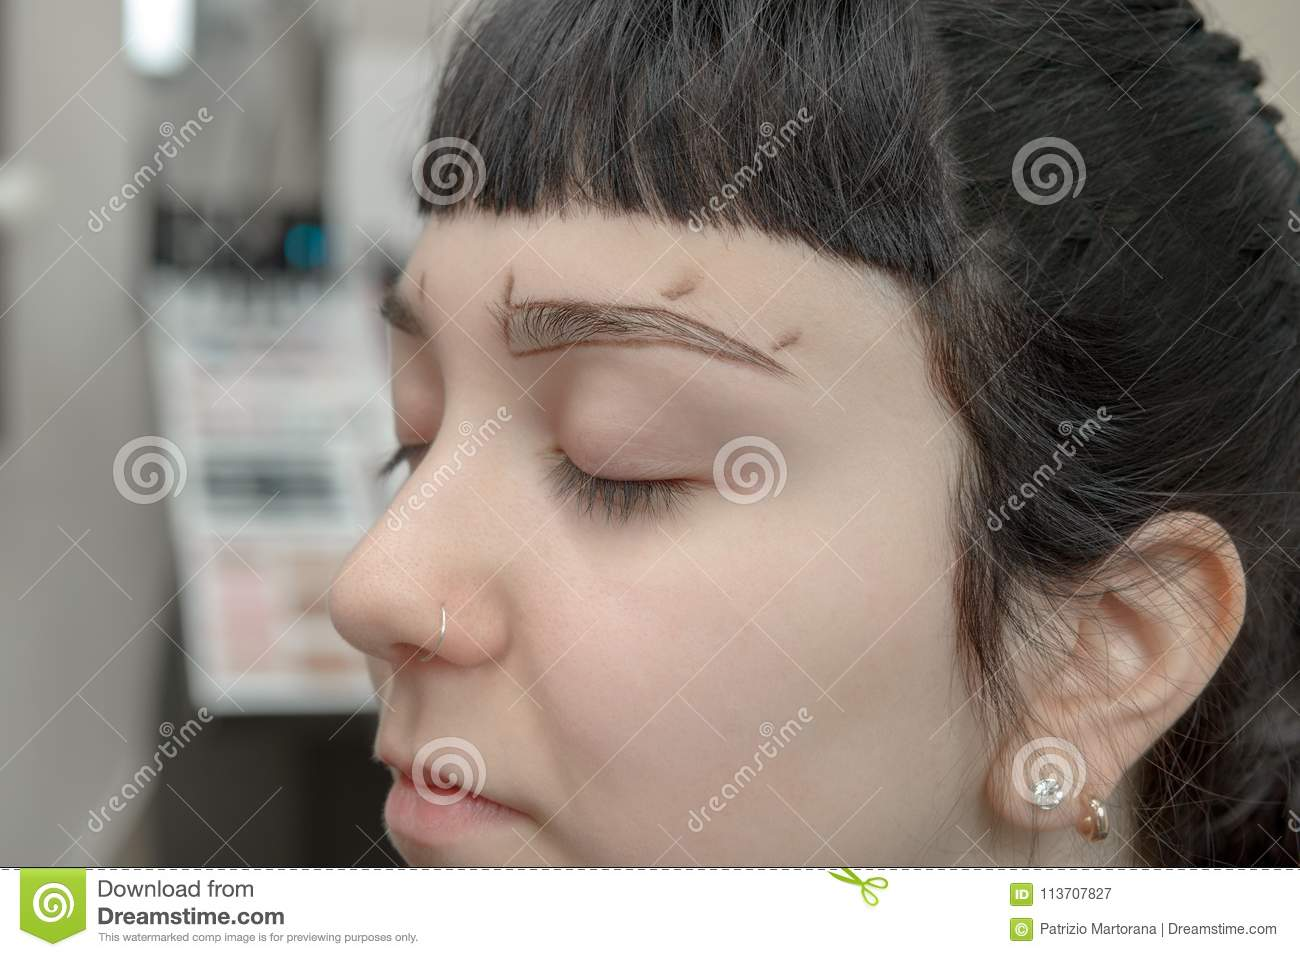 Permanent Makeup Permanent Tattooing Of Eyebrows Stock Image